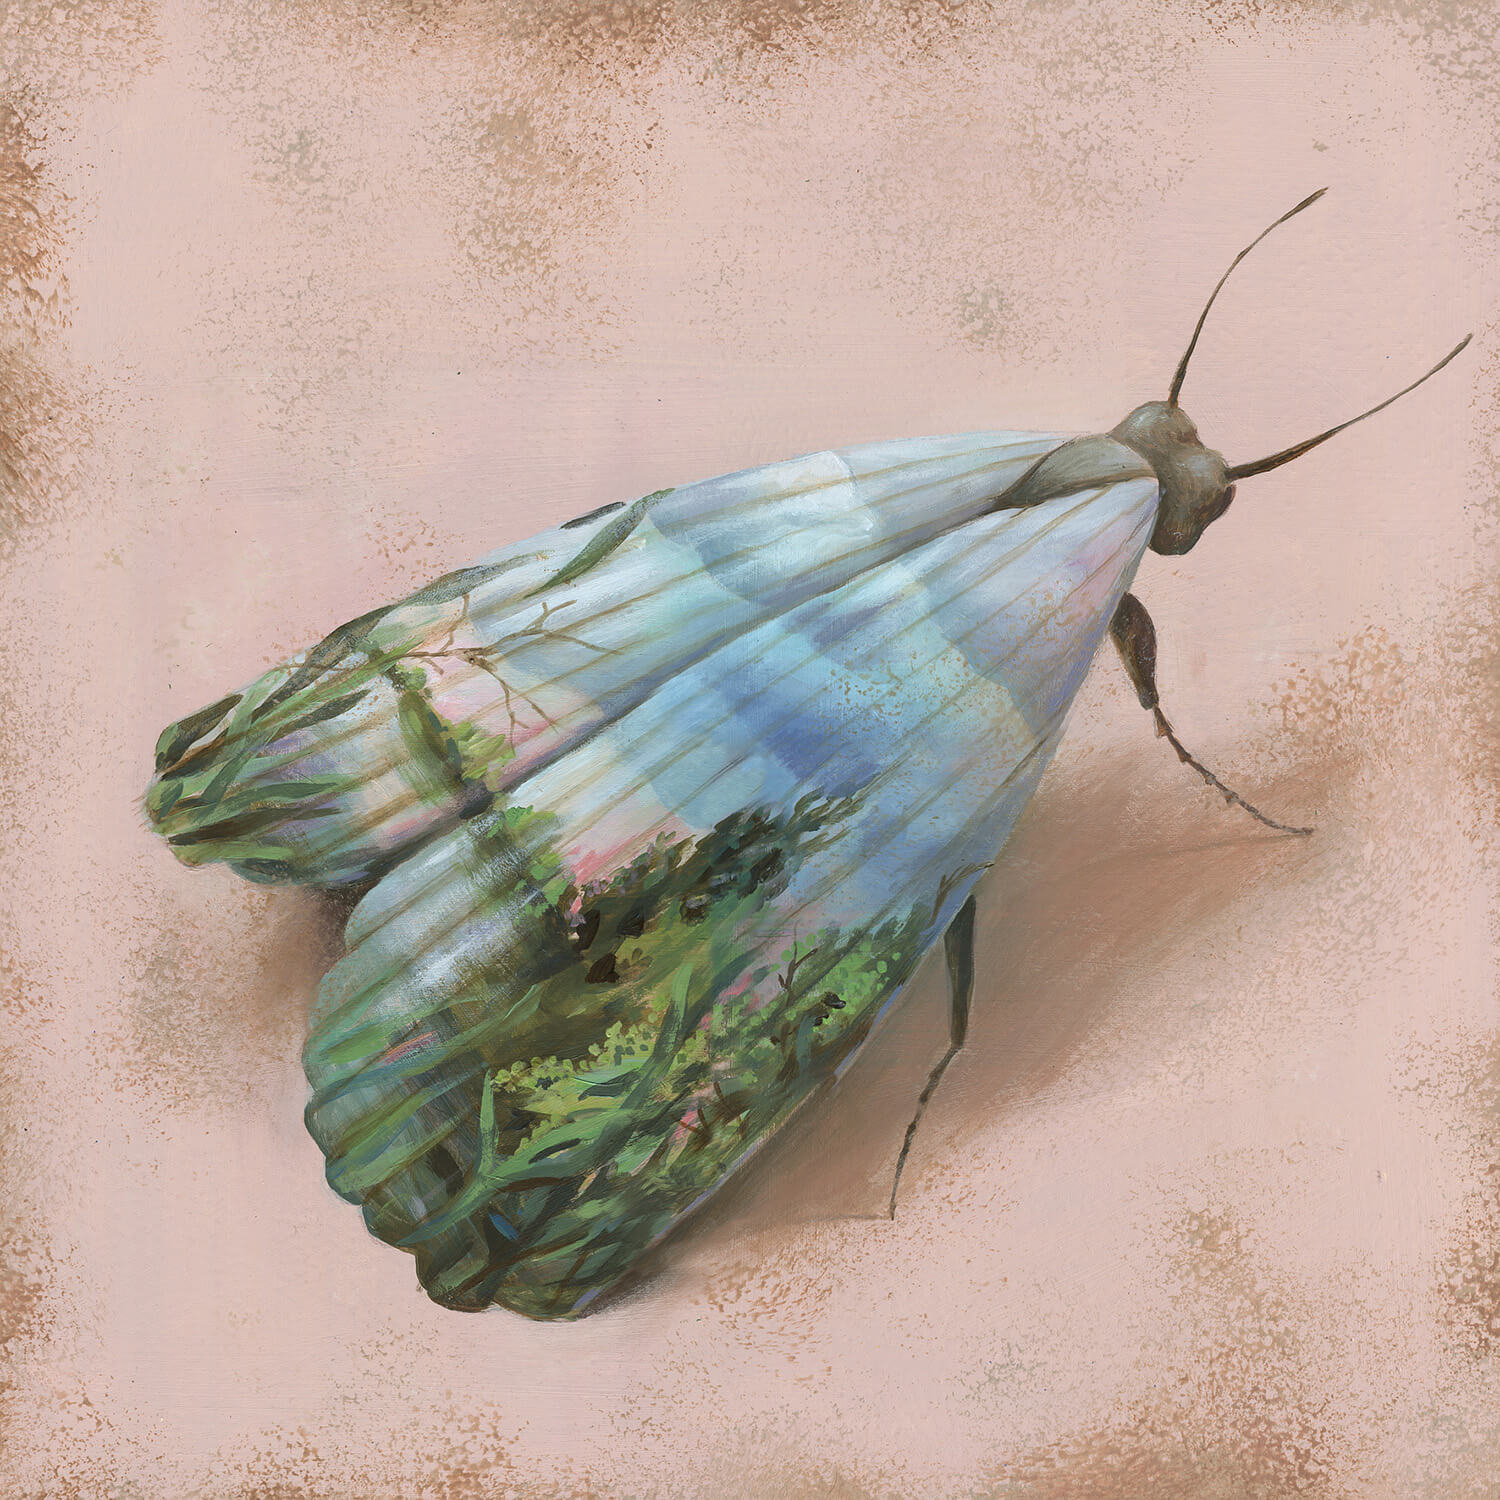 moth with landscape painted on wings